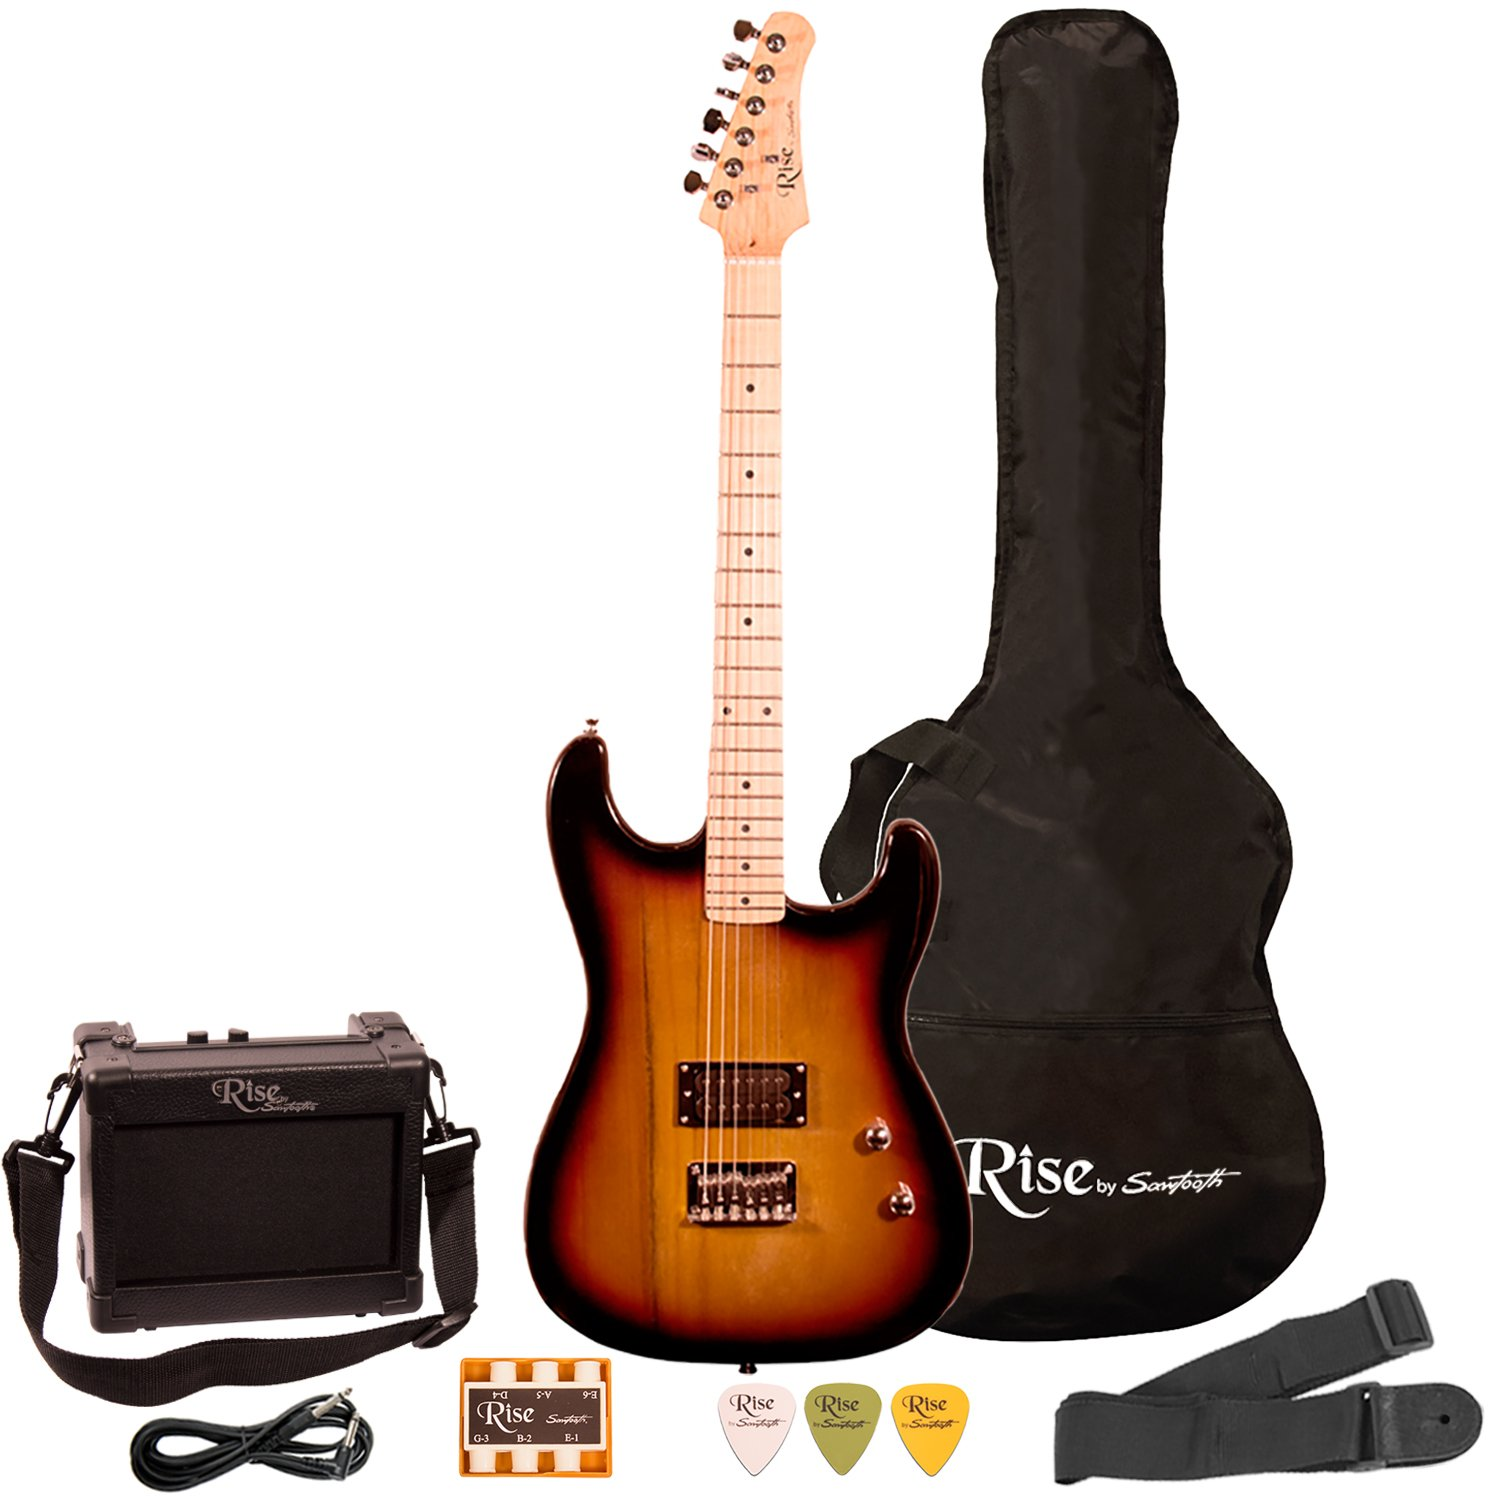 Rise by Sawtooth ST-RISE-ST-SB-KIT-1 Electric Guitar Pack, Sunburst by Sawtooth